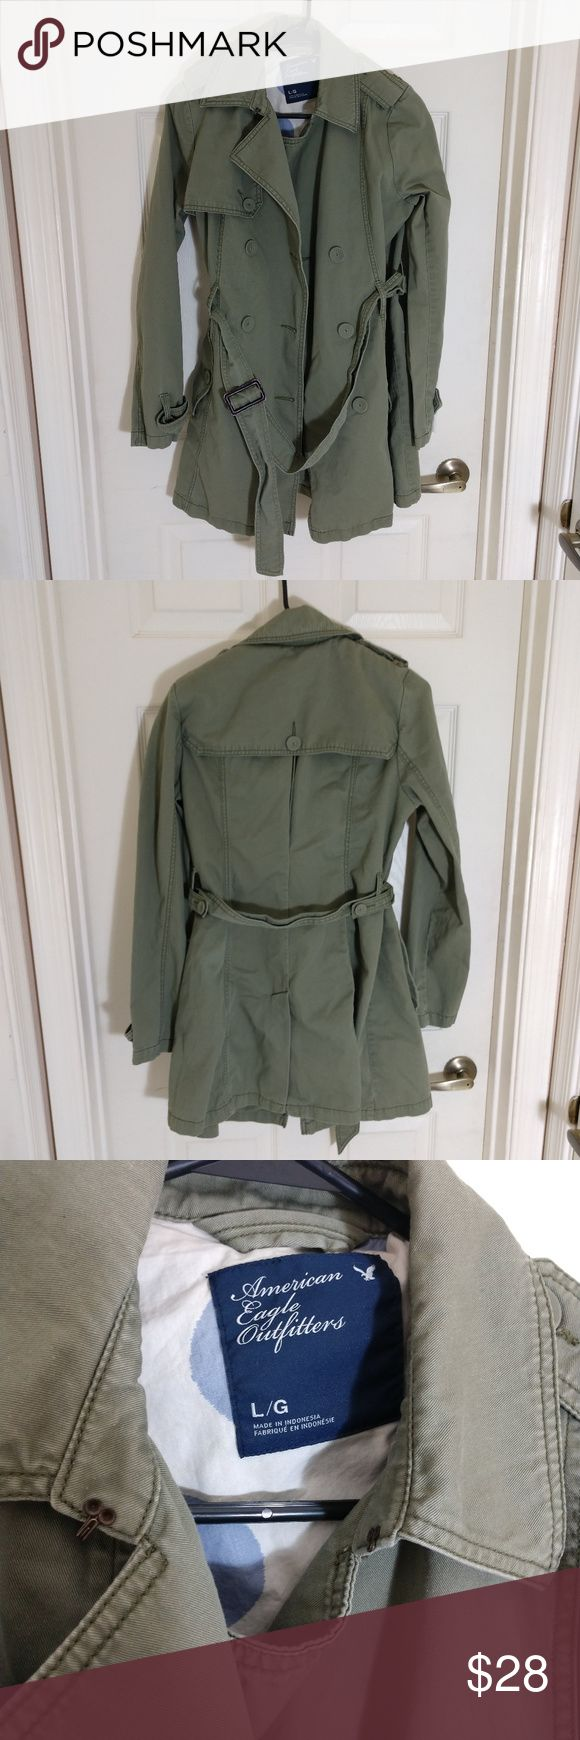 AMERICAN EAGLE OUTFITTER~TRENCH COAT~OD GREEN~SZ L AMERICAN EAGLE OUTFITTER~TRENCH COAT~OD GREEN~SZ L  DETAIL:  OLIVE DRAB, TRENCH COAT, WITH BELT.  CONDITION:  Item is in excellent used condition. Very little, if any, noticeable wear. See images for condition. Feel free to ask any questions. American Eagle Outfitters Jackets & Coats Trench Coats